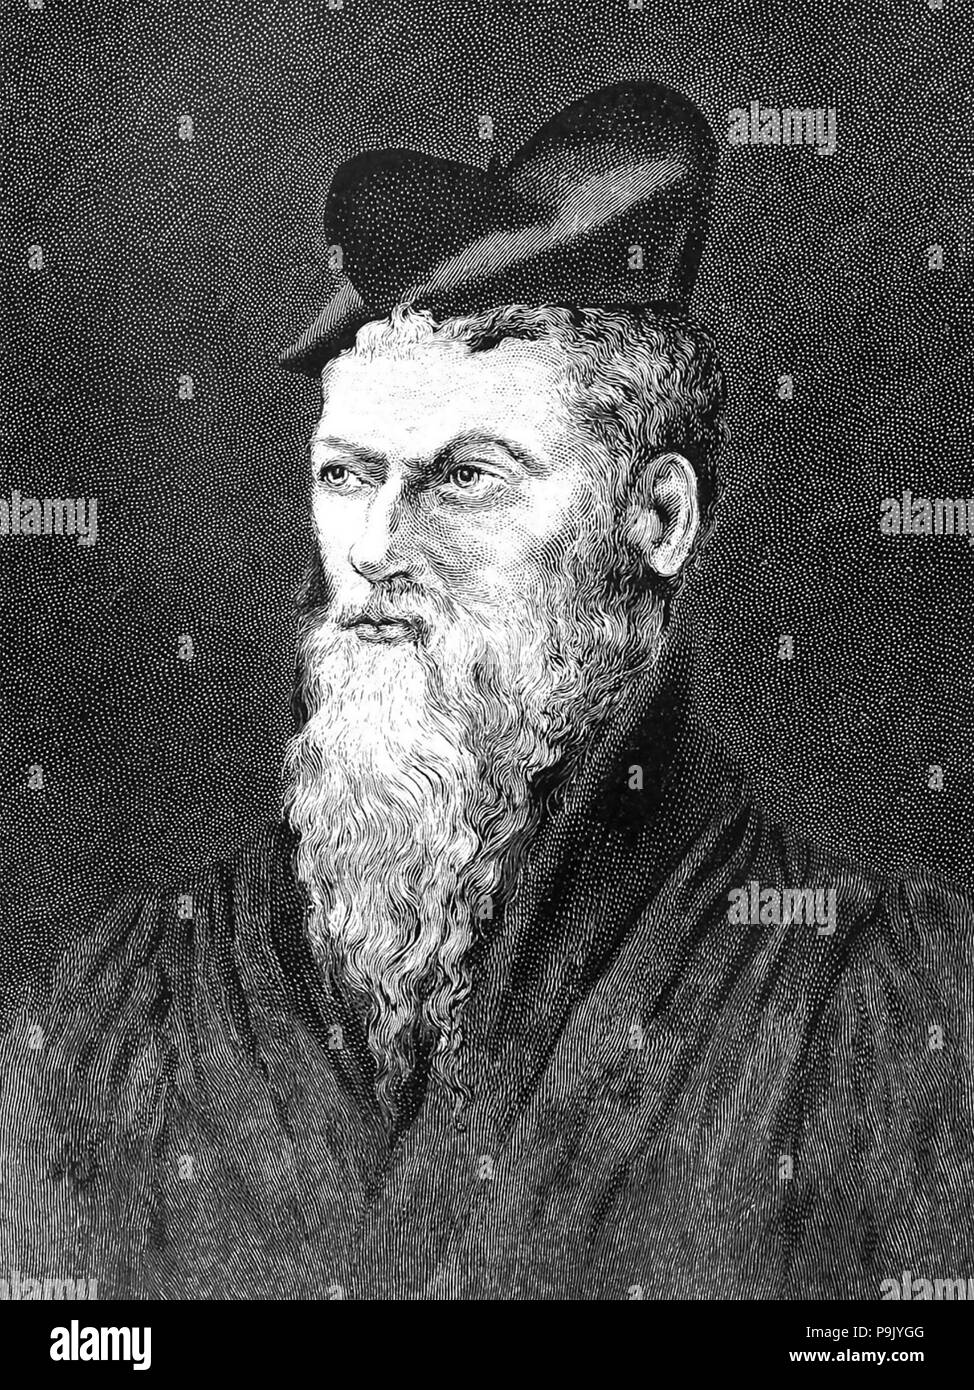 PIERRE BELON (1517-1564) French naturalist and diplomat - Stock Image